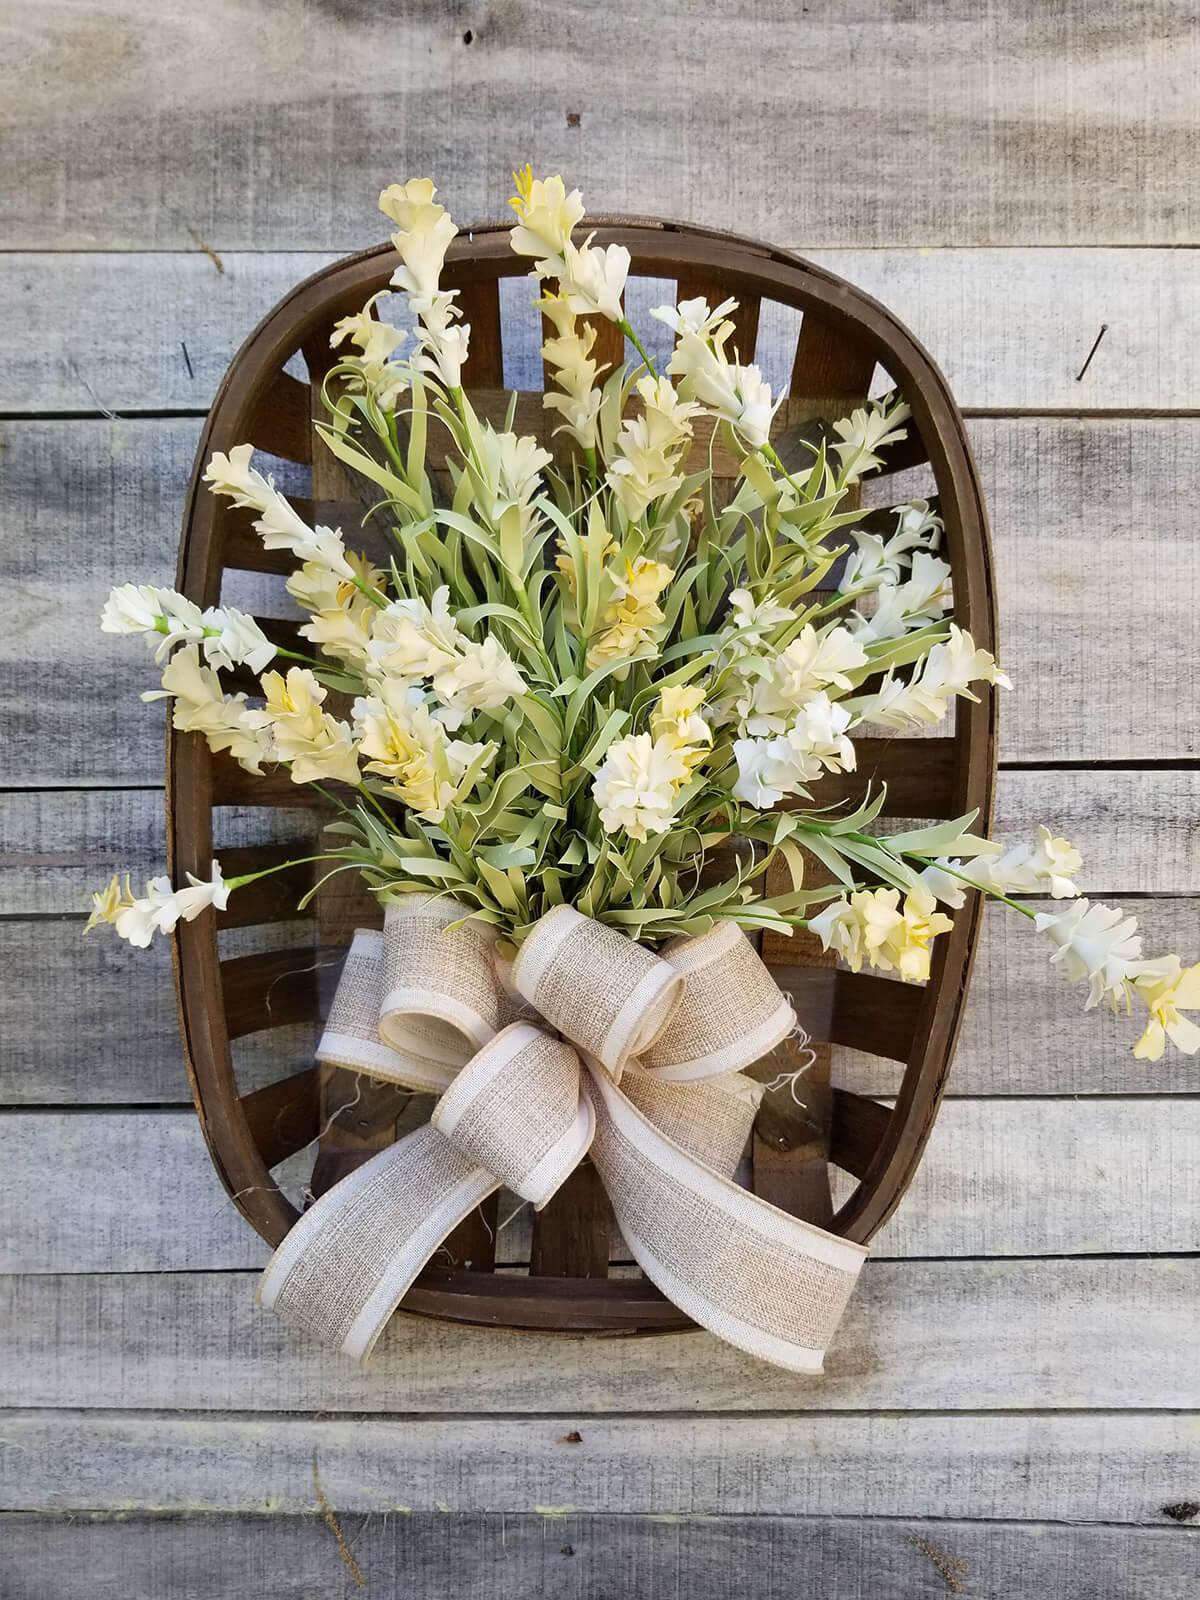 Charming Mounted Bouquet Basket